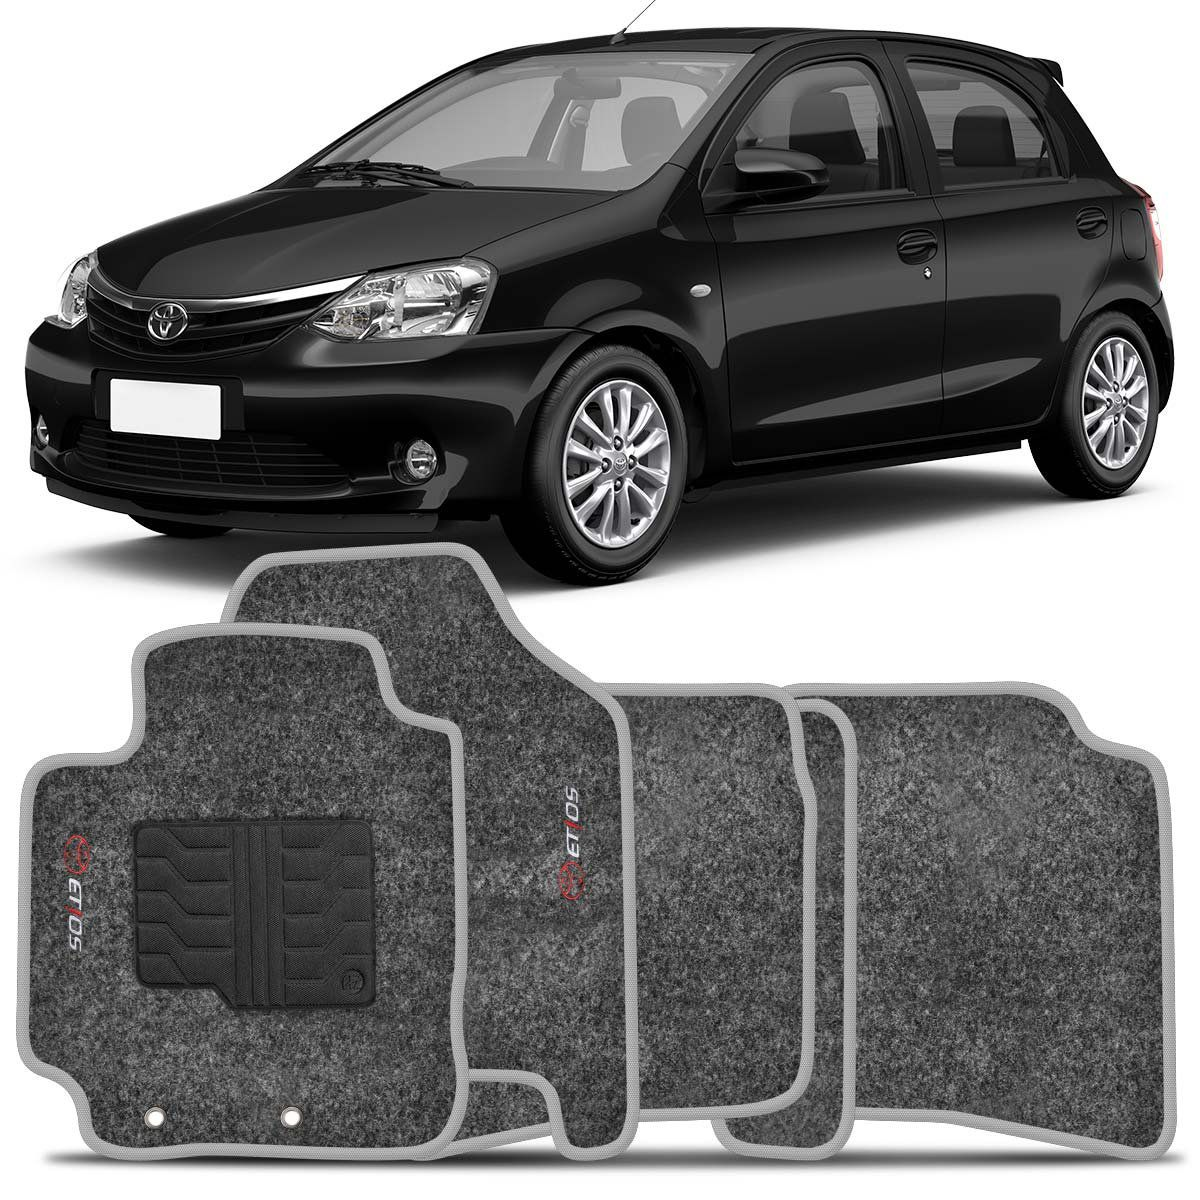 Tapete Carpete Etios Hatch e Sedan 2013 2014 Grafite